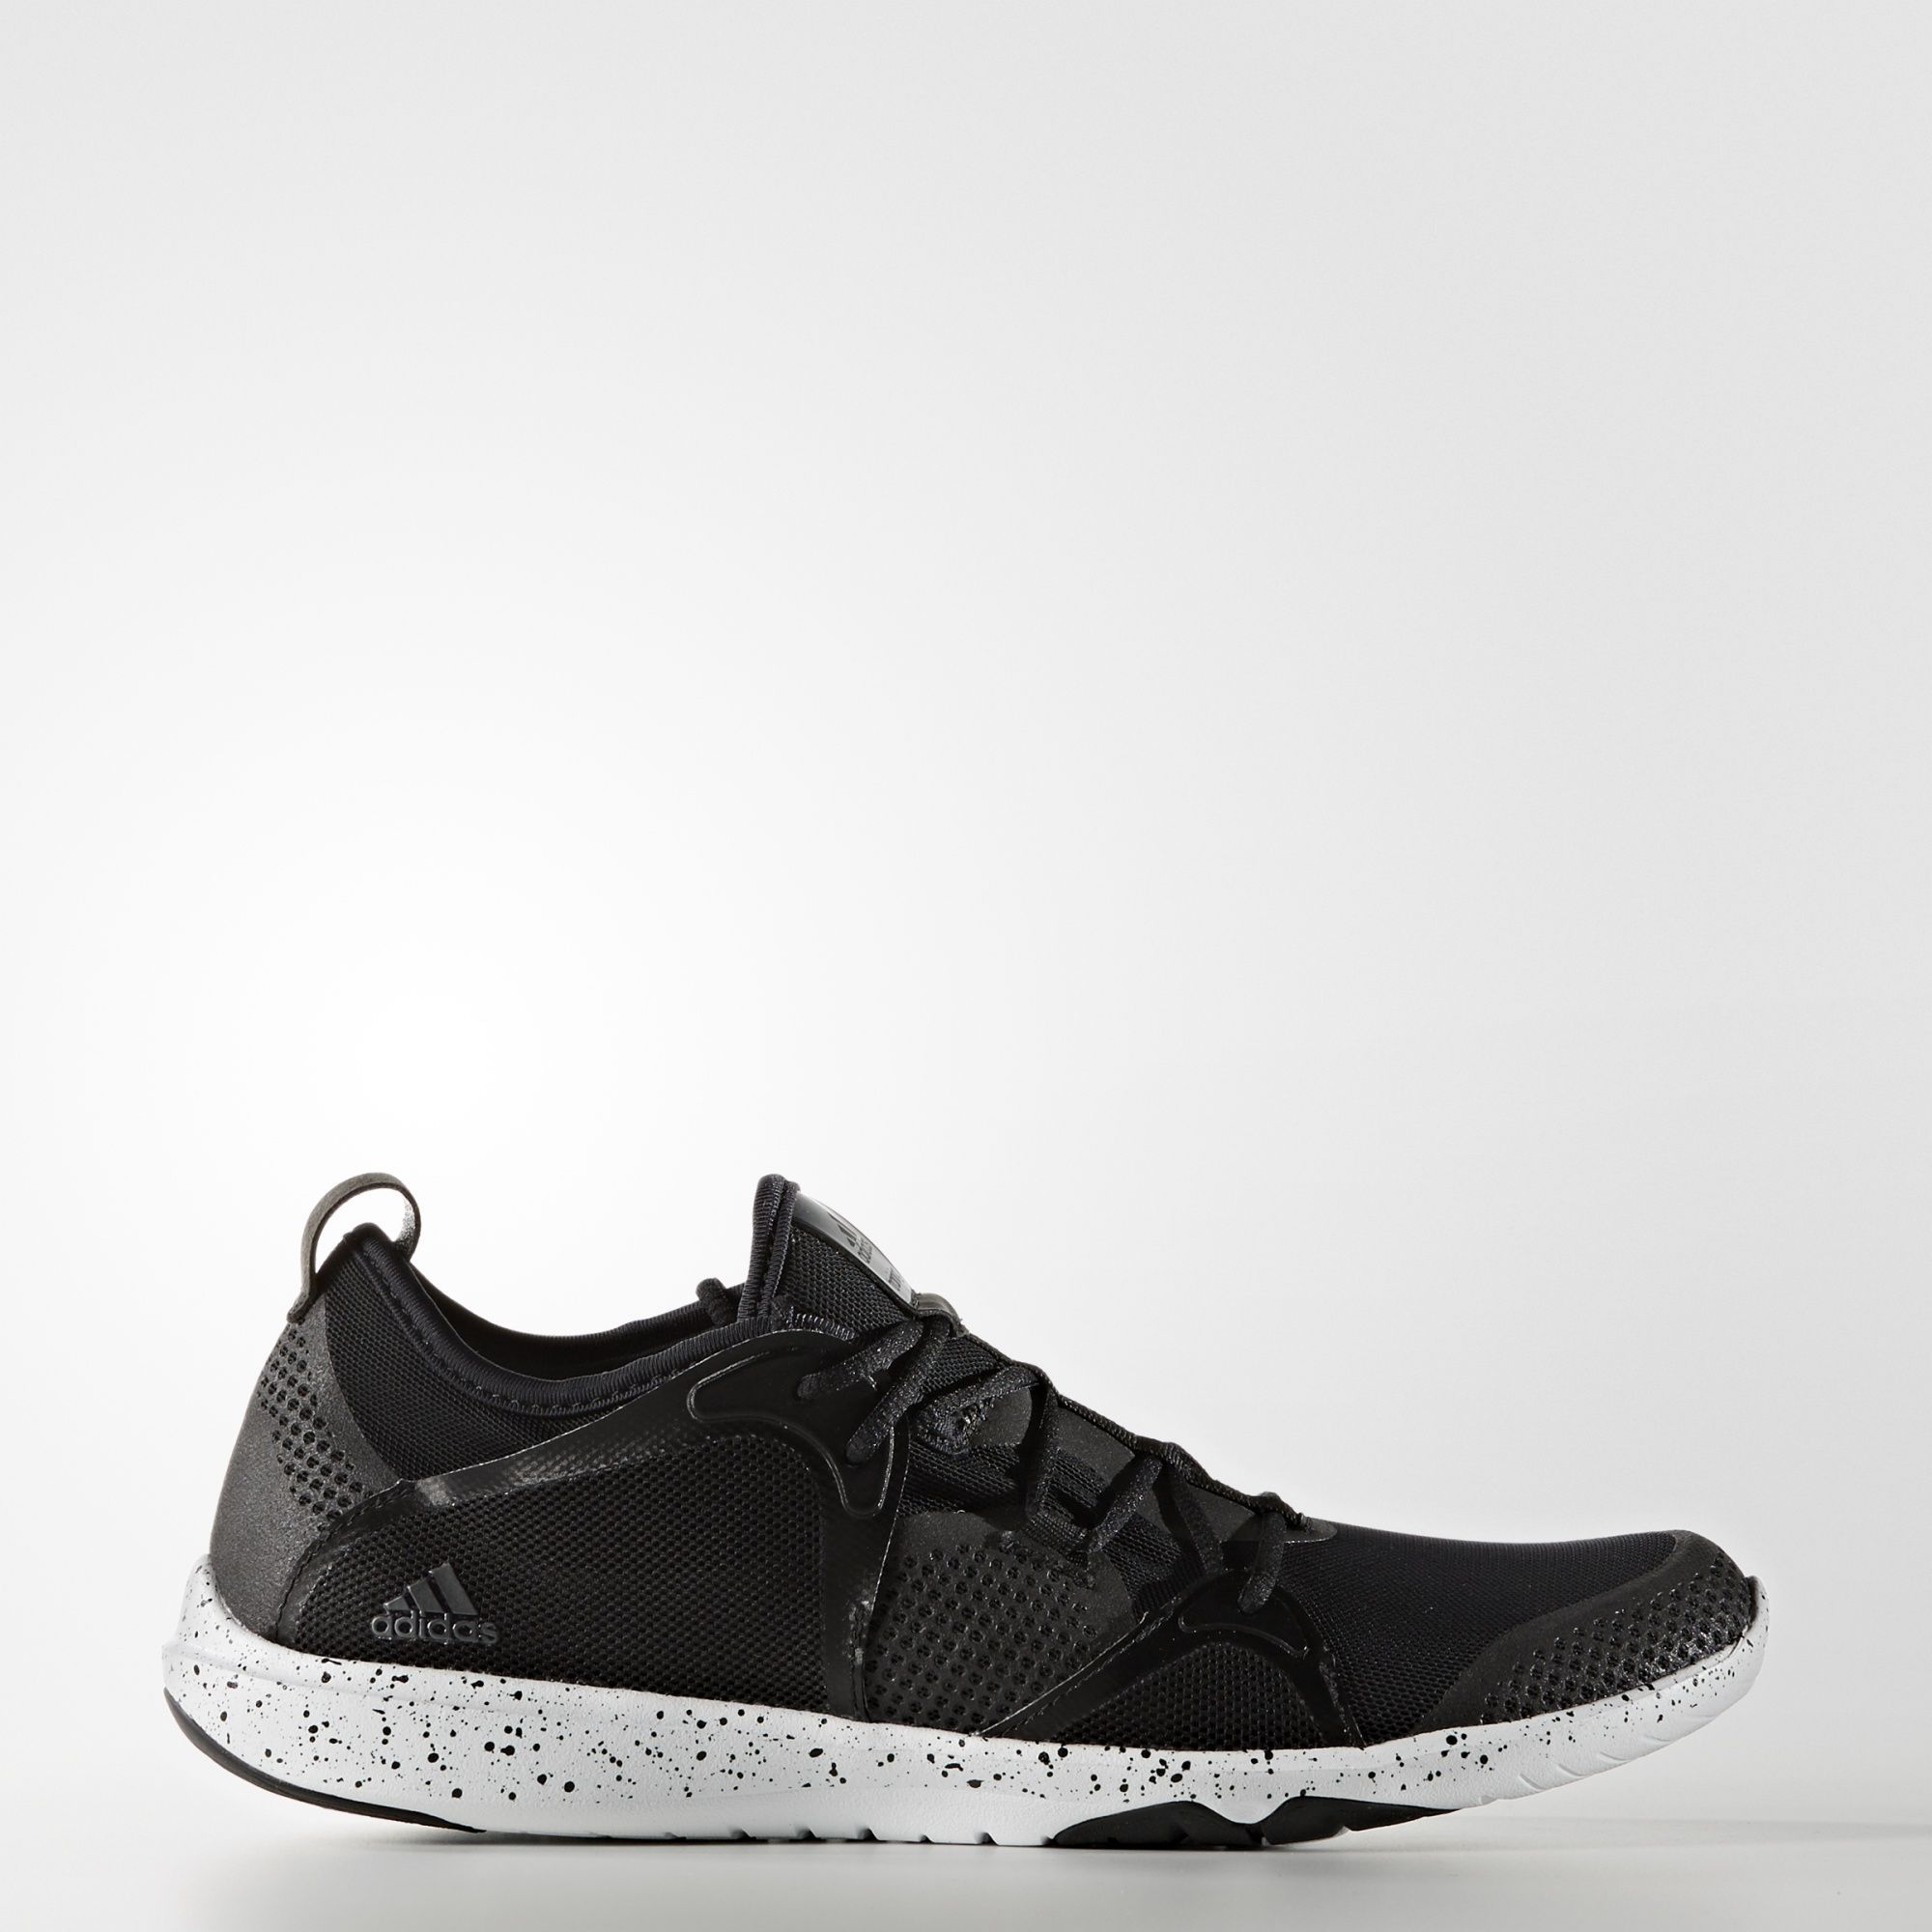 adidas - adipure 360.4 Shoes